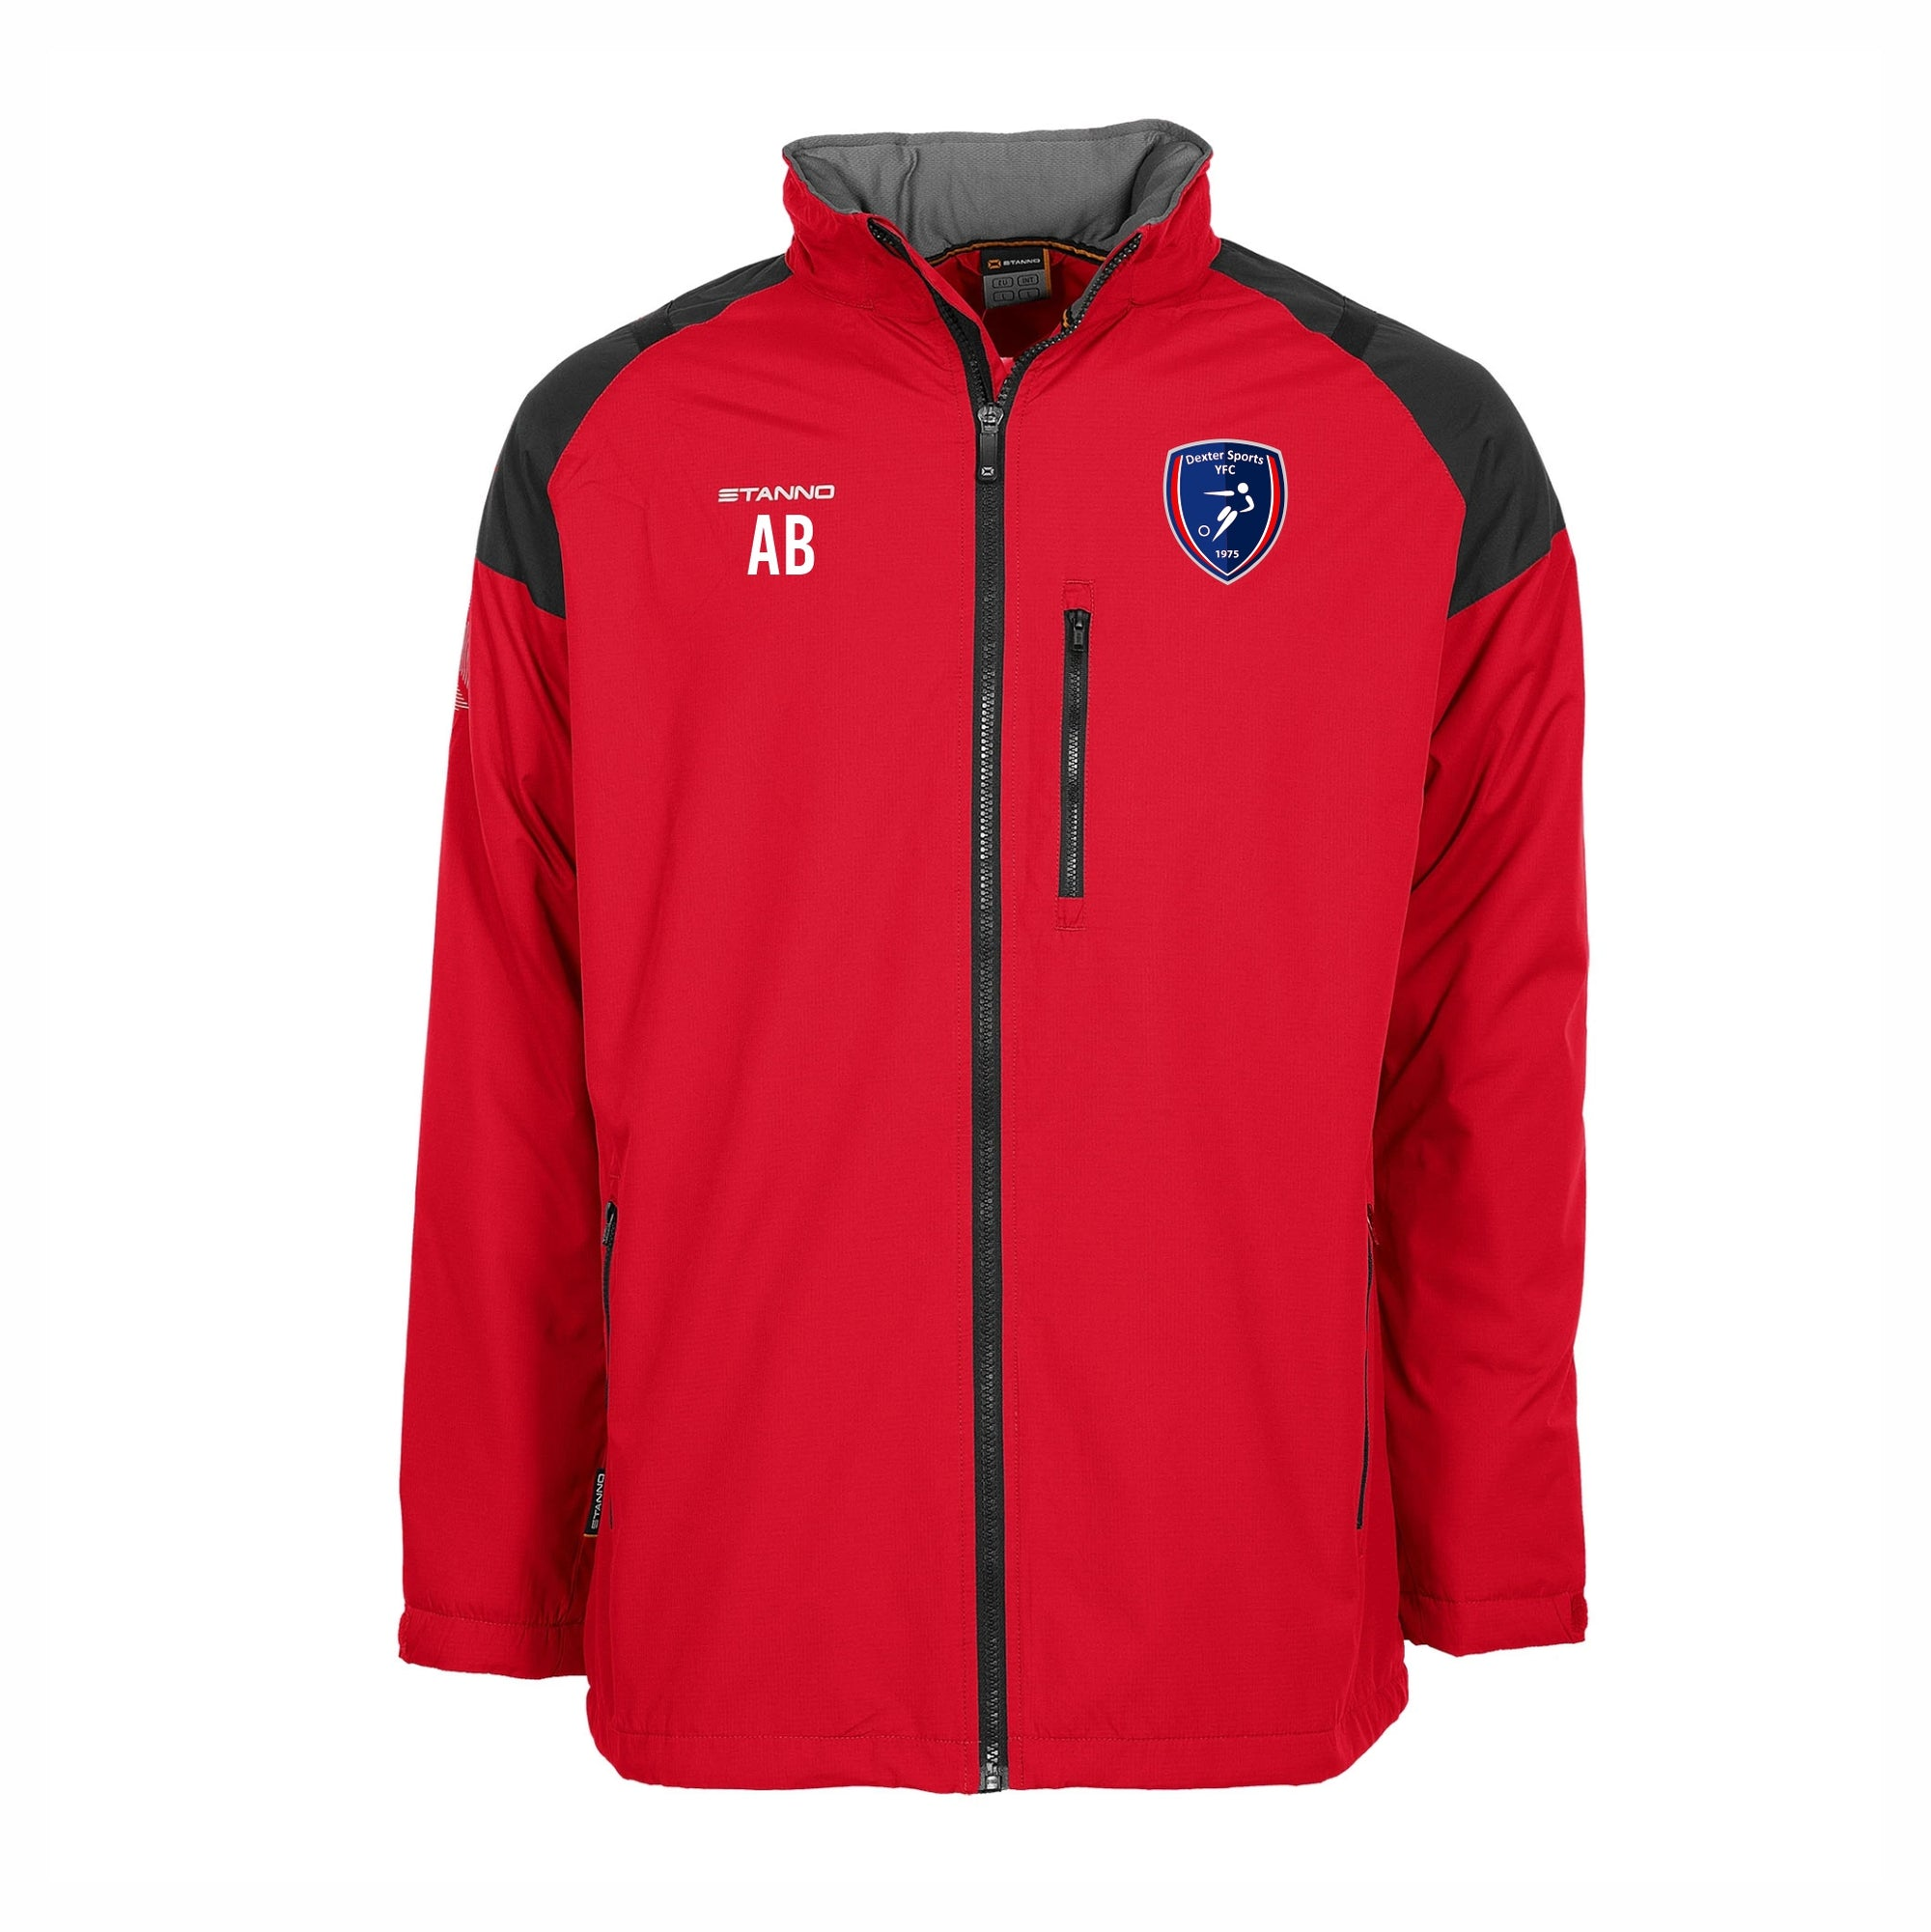 Dexters - Stanno Centro All Season Jacket - Red/Black